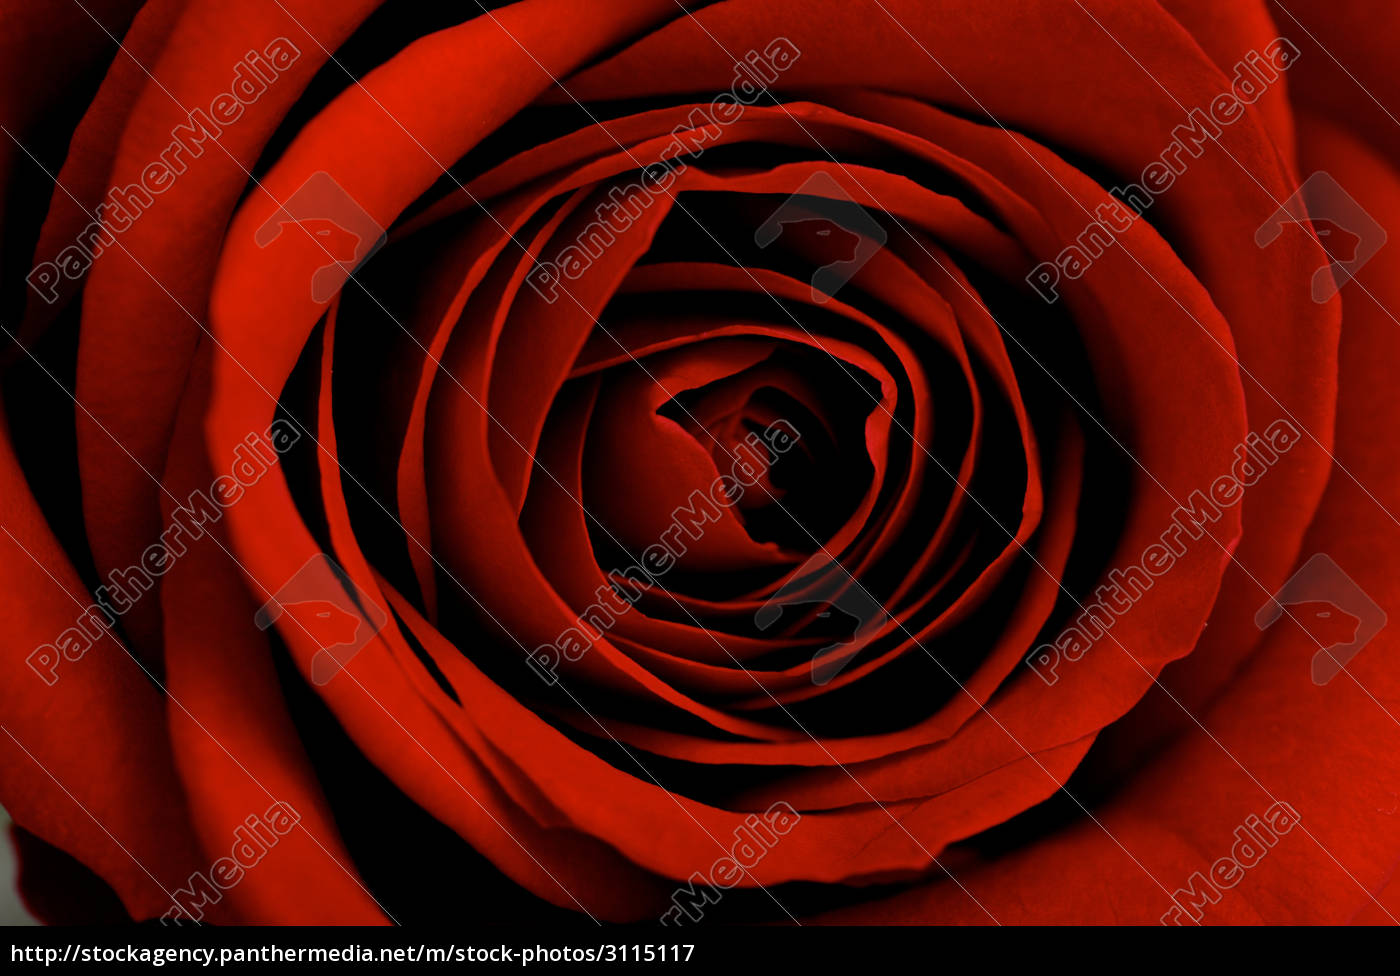 red, rose, close-up - 3115117